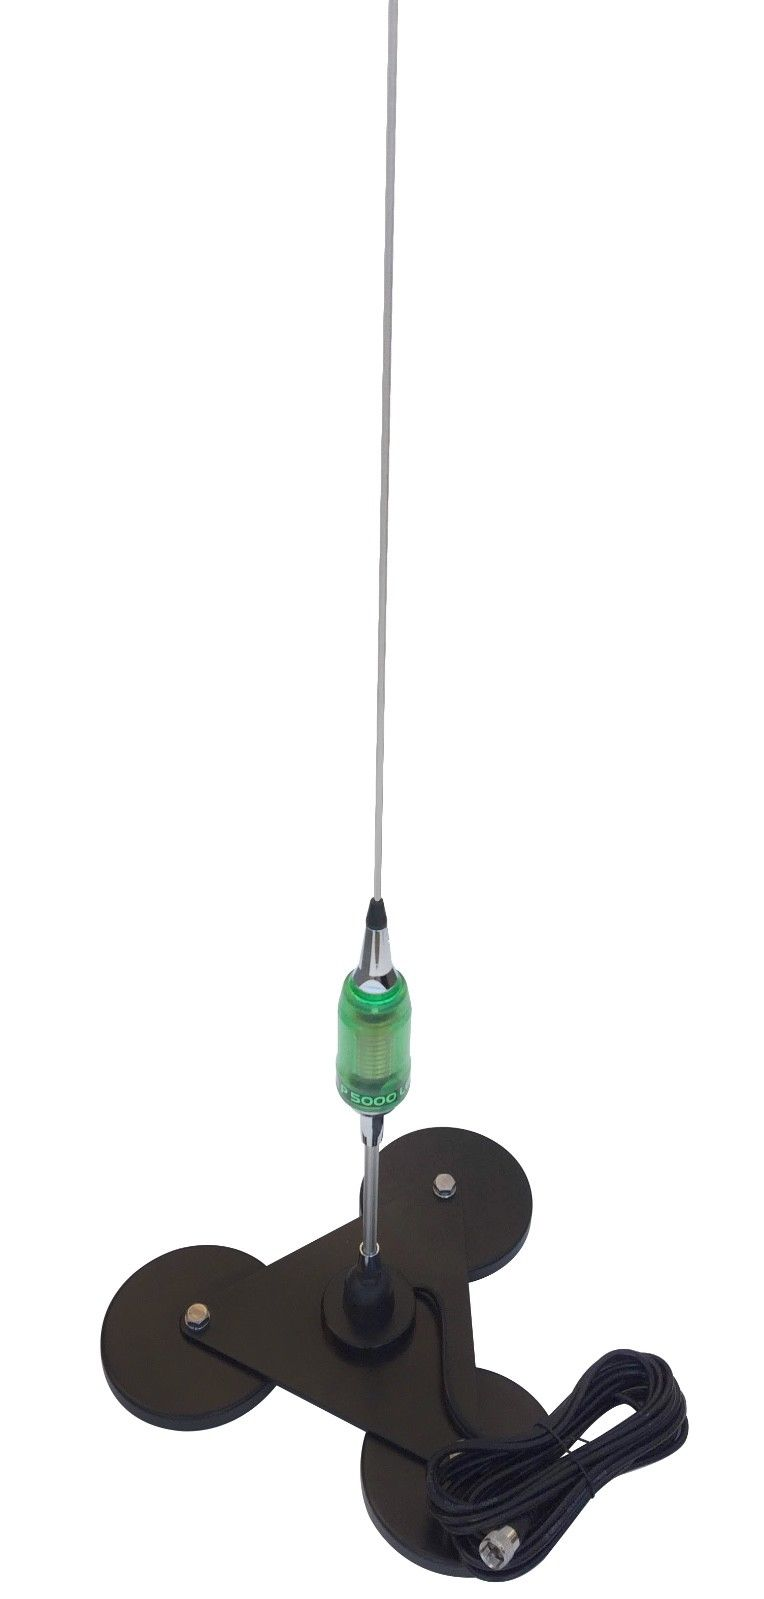 Sirio Performer 5000 3/8 LED 5000W Antenna with Triplex Magnet